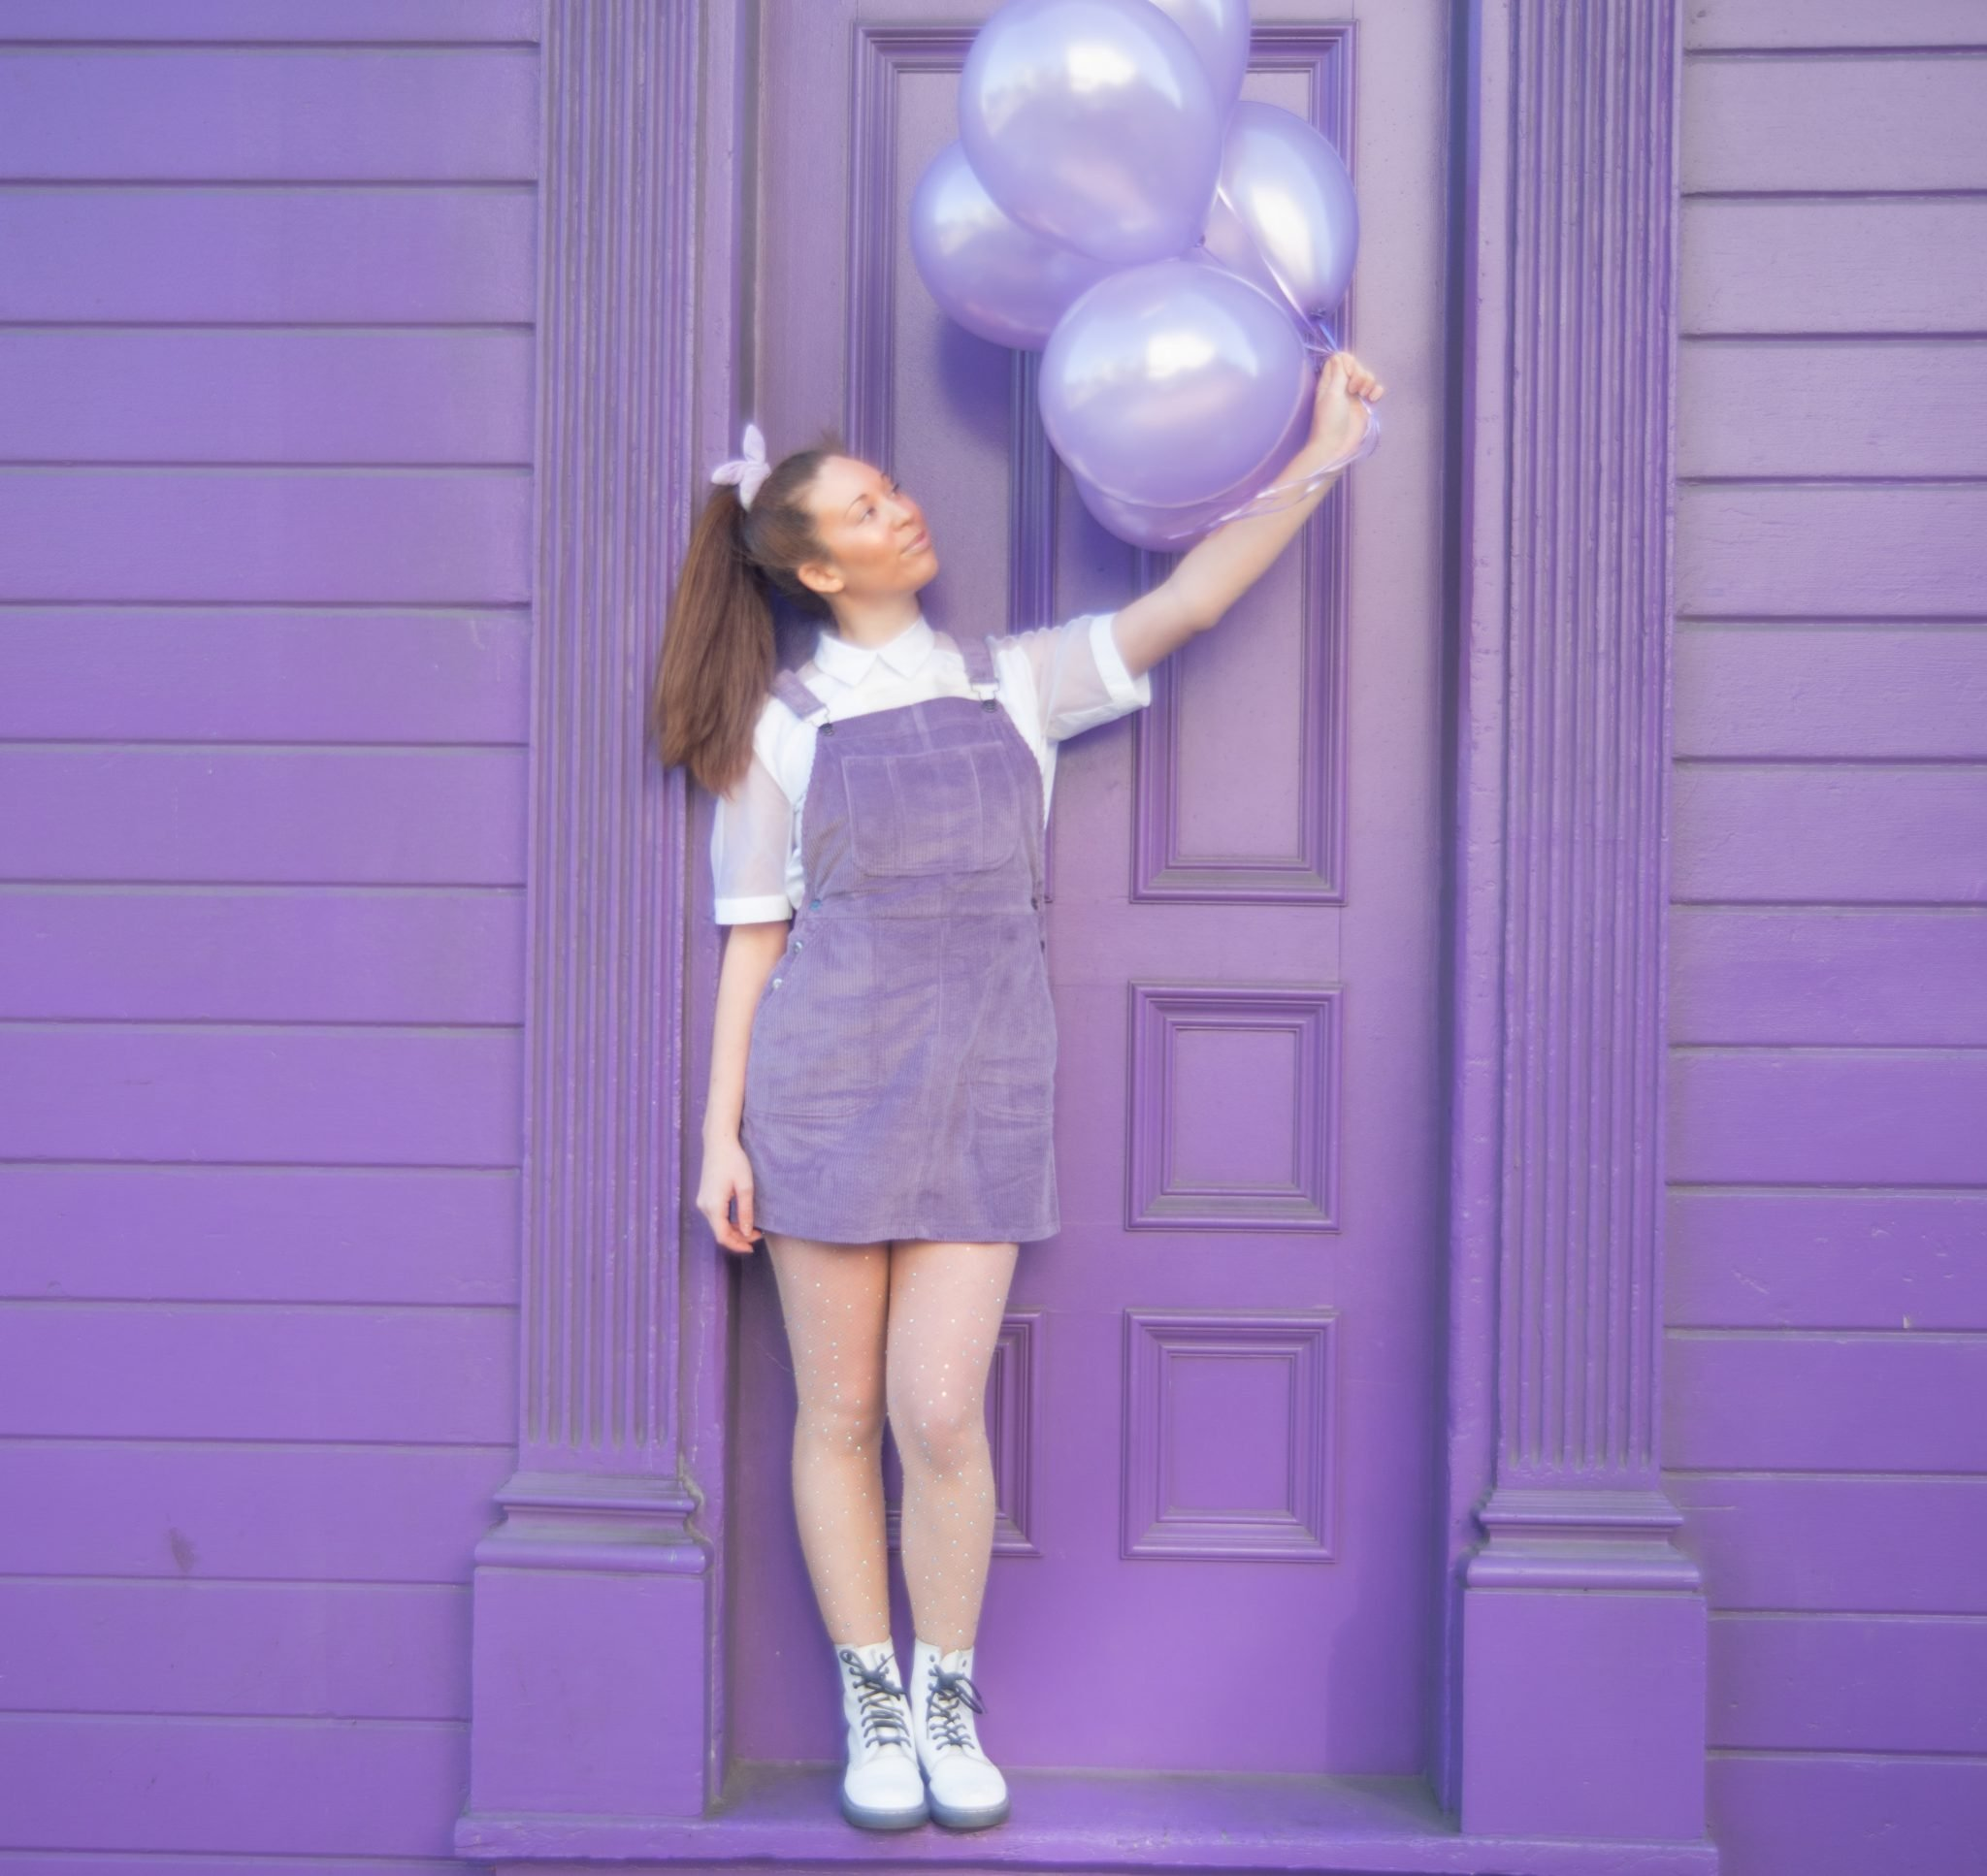 Square photograph of criibaby the singer in front of a lilac wooden house. She is standing on the front step by a wooden door. In her left hand she is holding 6 lilac balloons with ribbon. She is wearing a lilac pinafore dungaree dress with a white shirt. She has long dark hair which is tied up in a ponytail with a lilac scrunchie. She's wearing white boots with black laces.